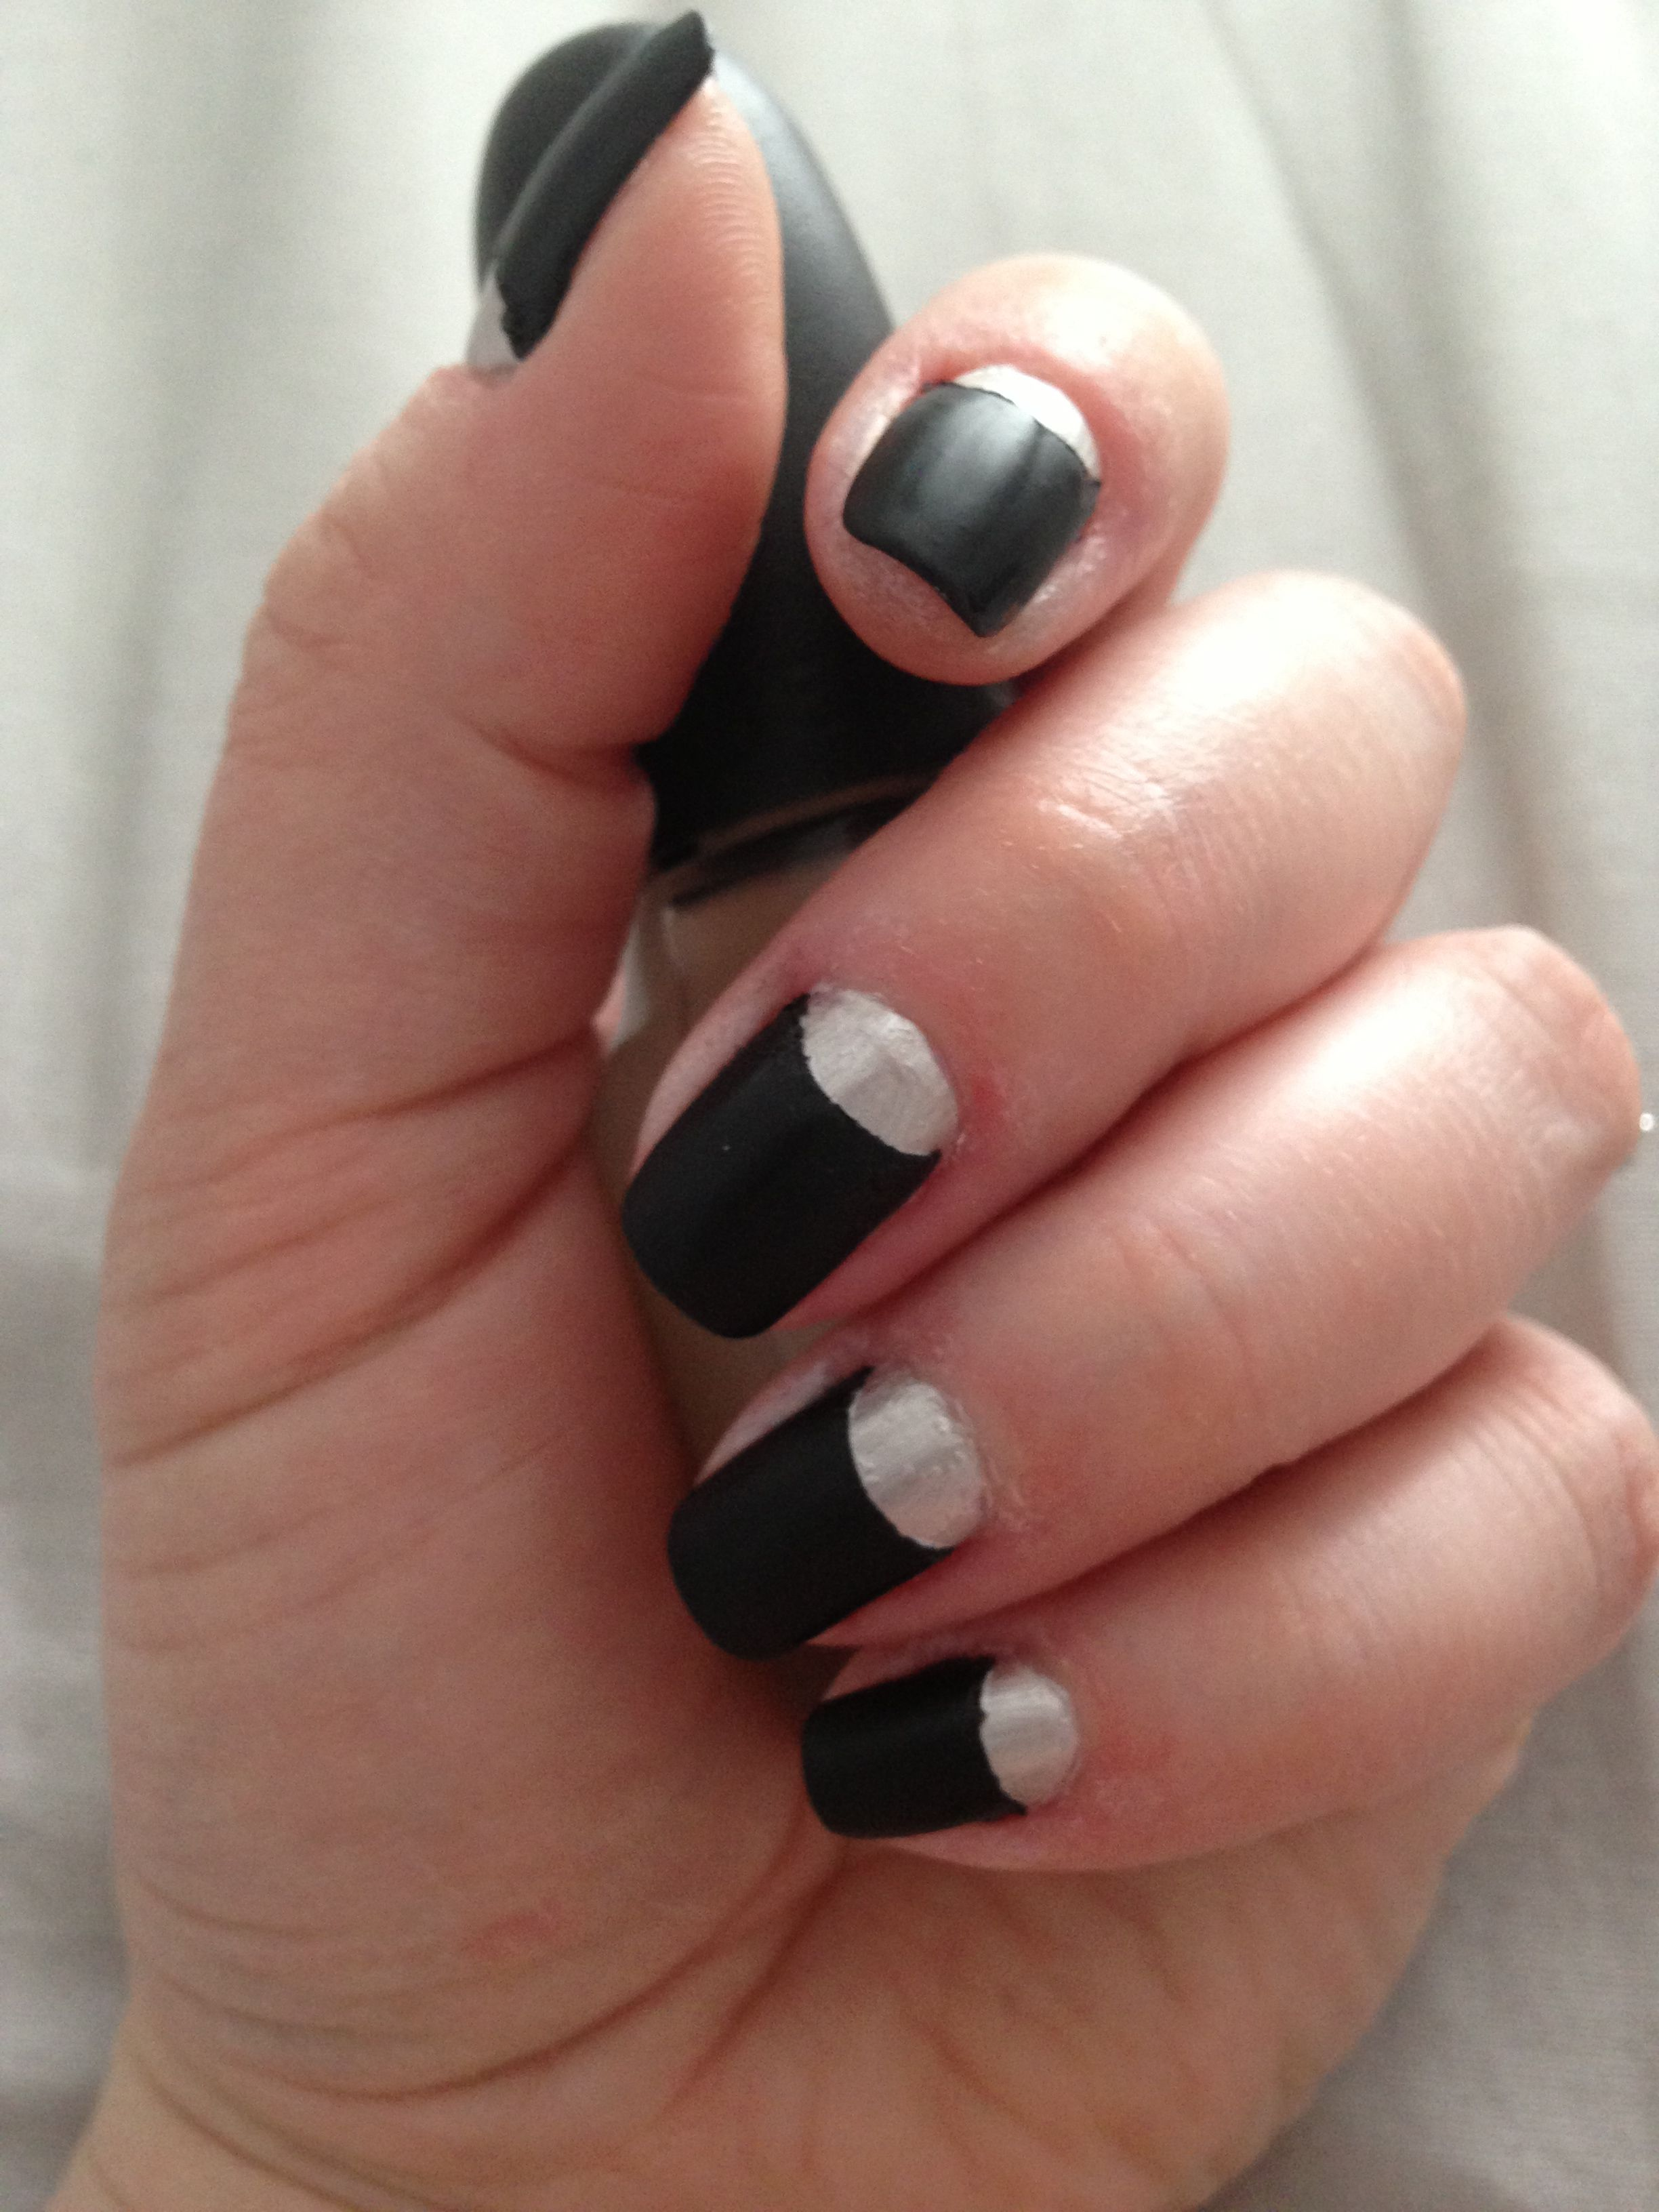 Reverse french nails manicure | New Nails | Pinterest | Reverse ...